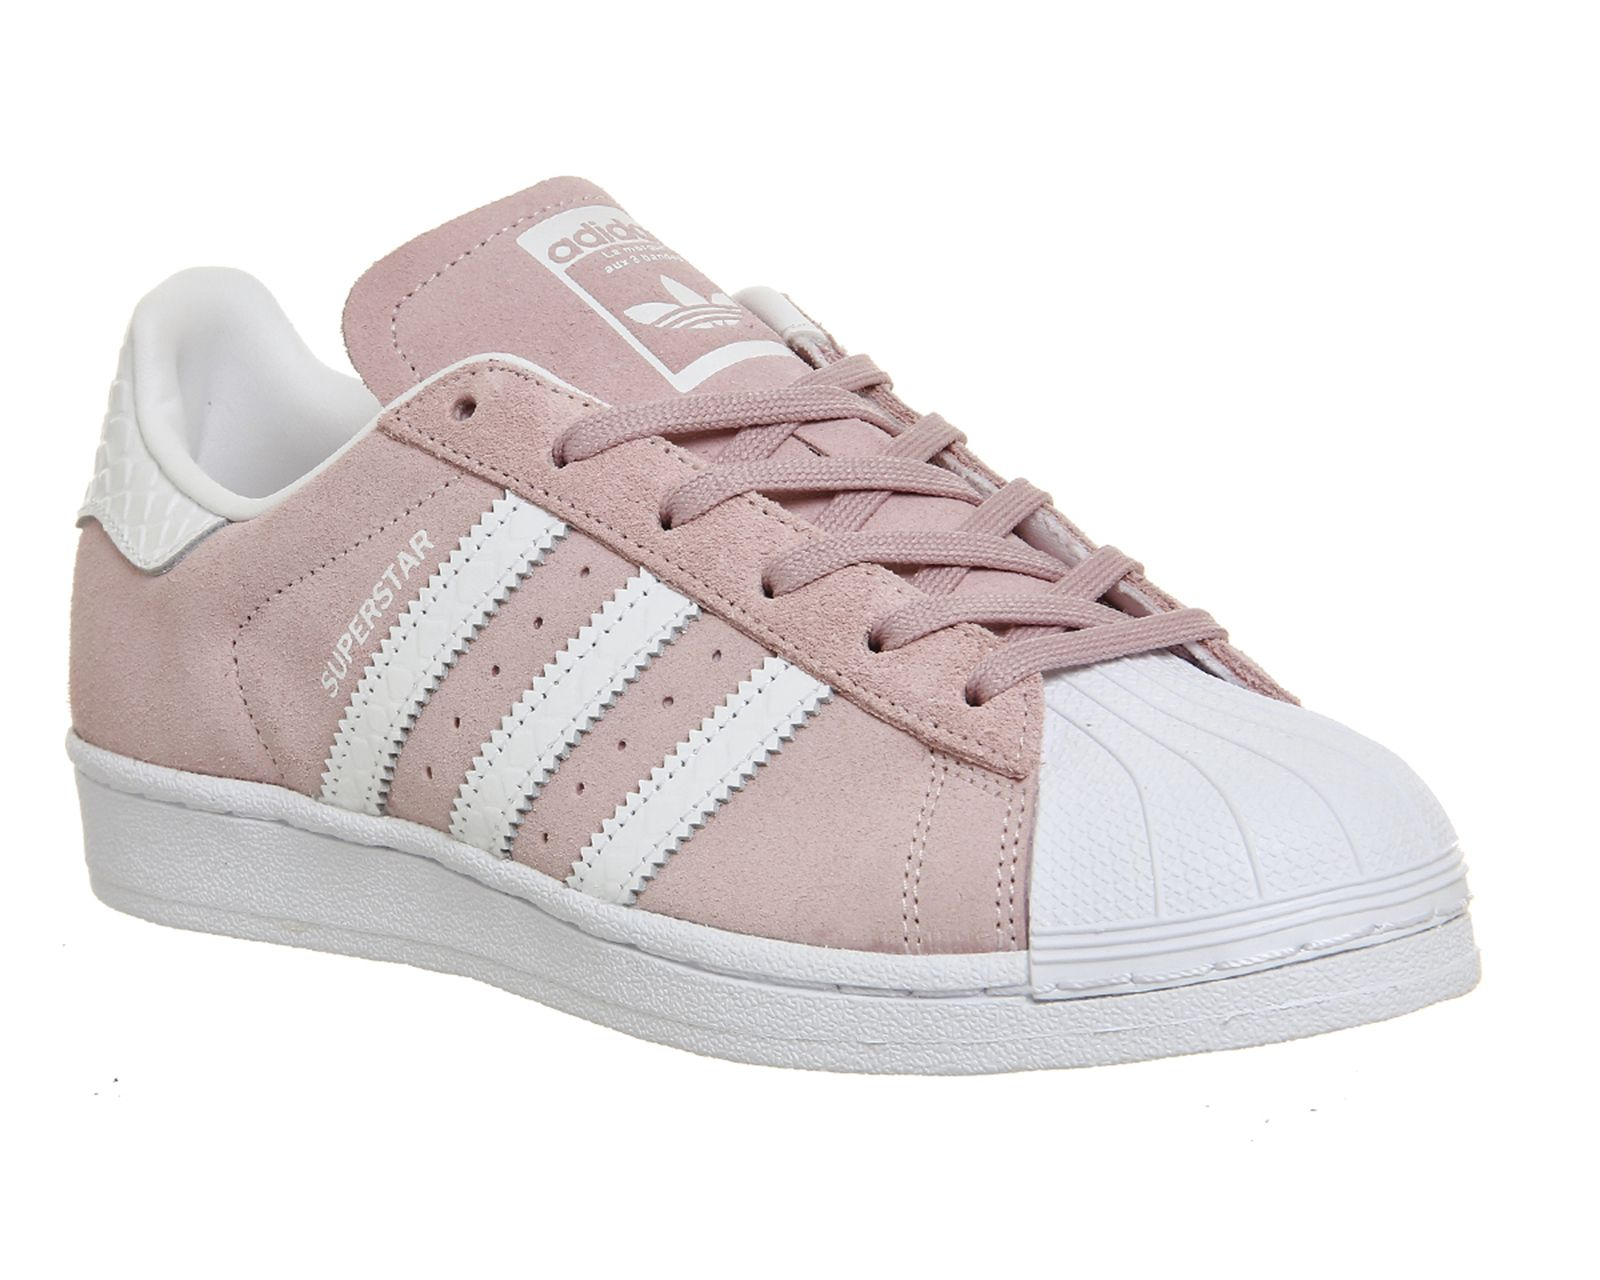 Adidas Superstar 1 Pink White Snake - Unisex Sports